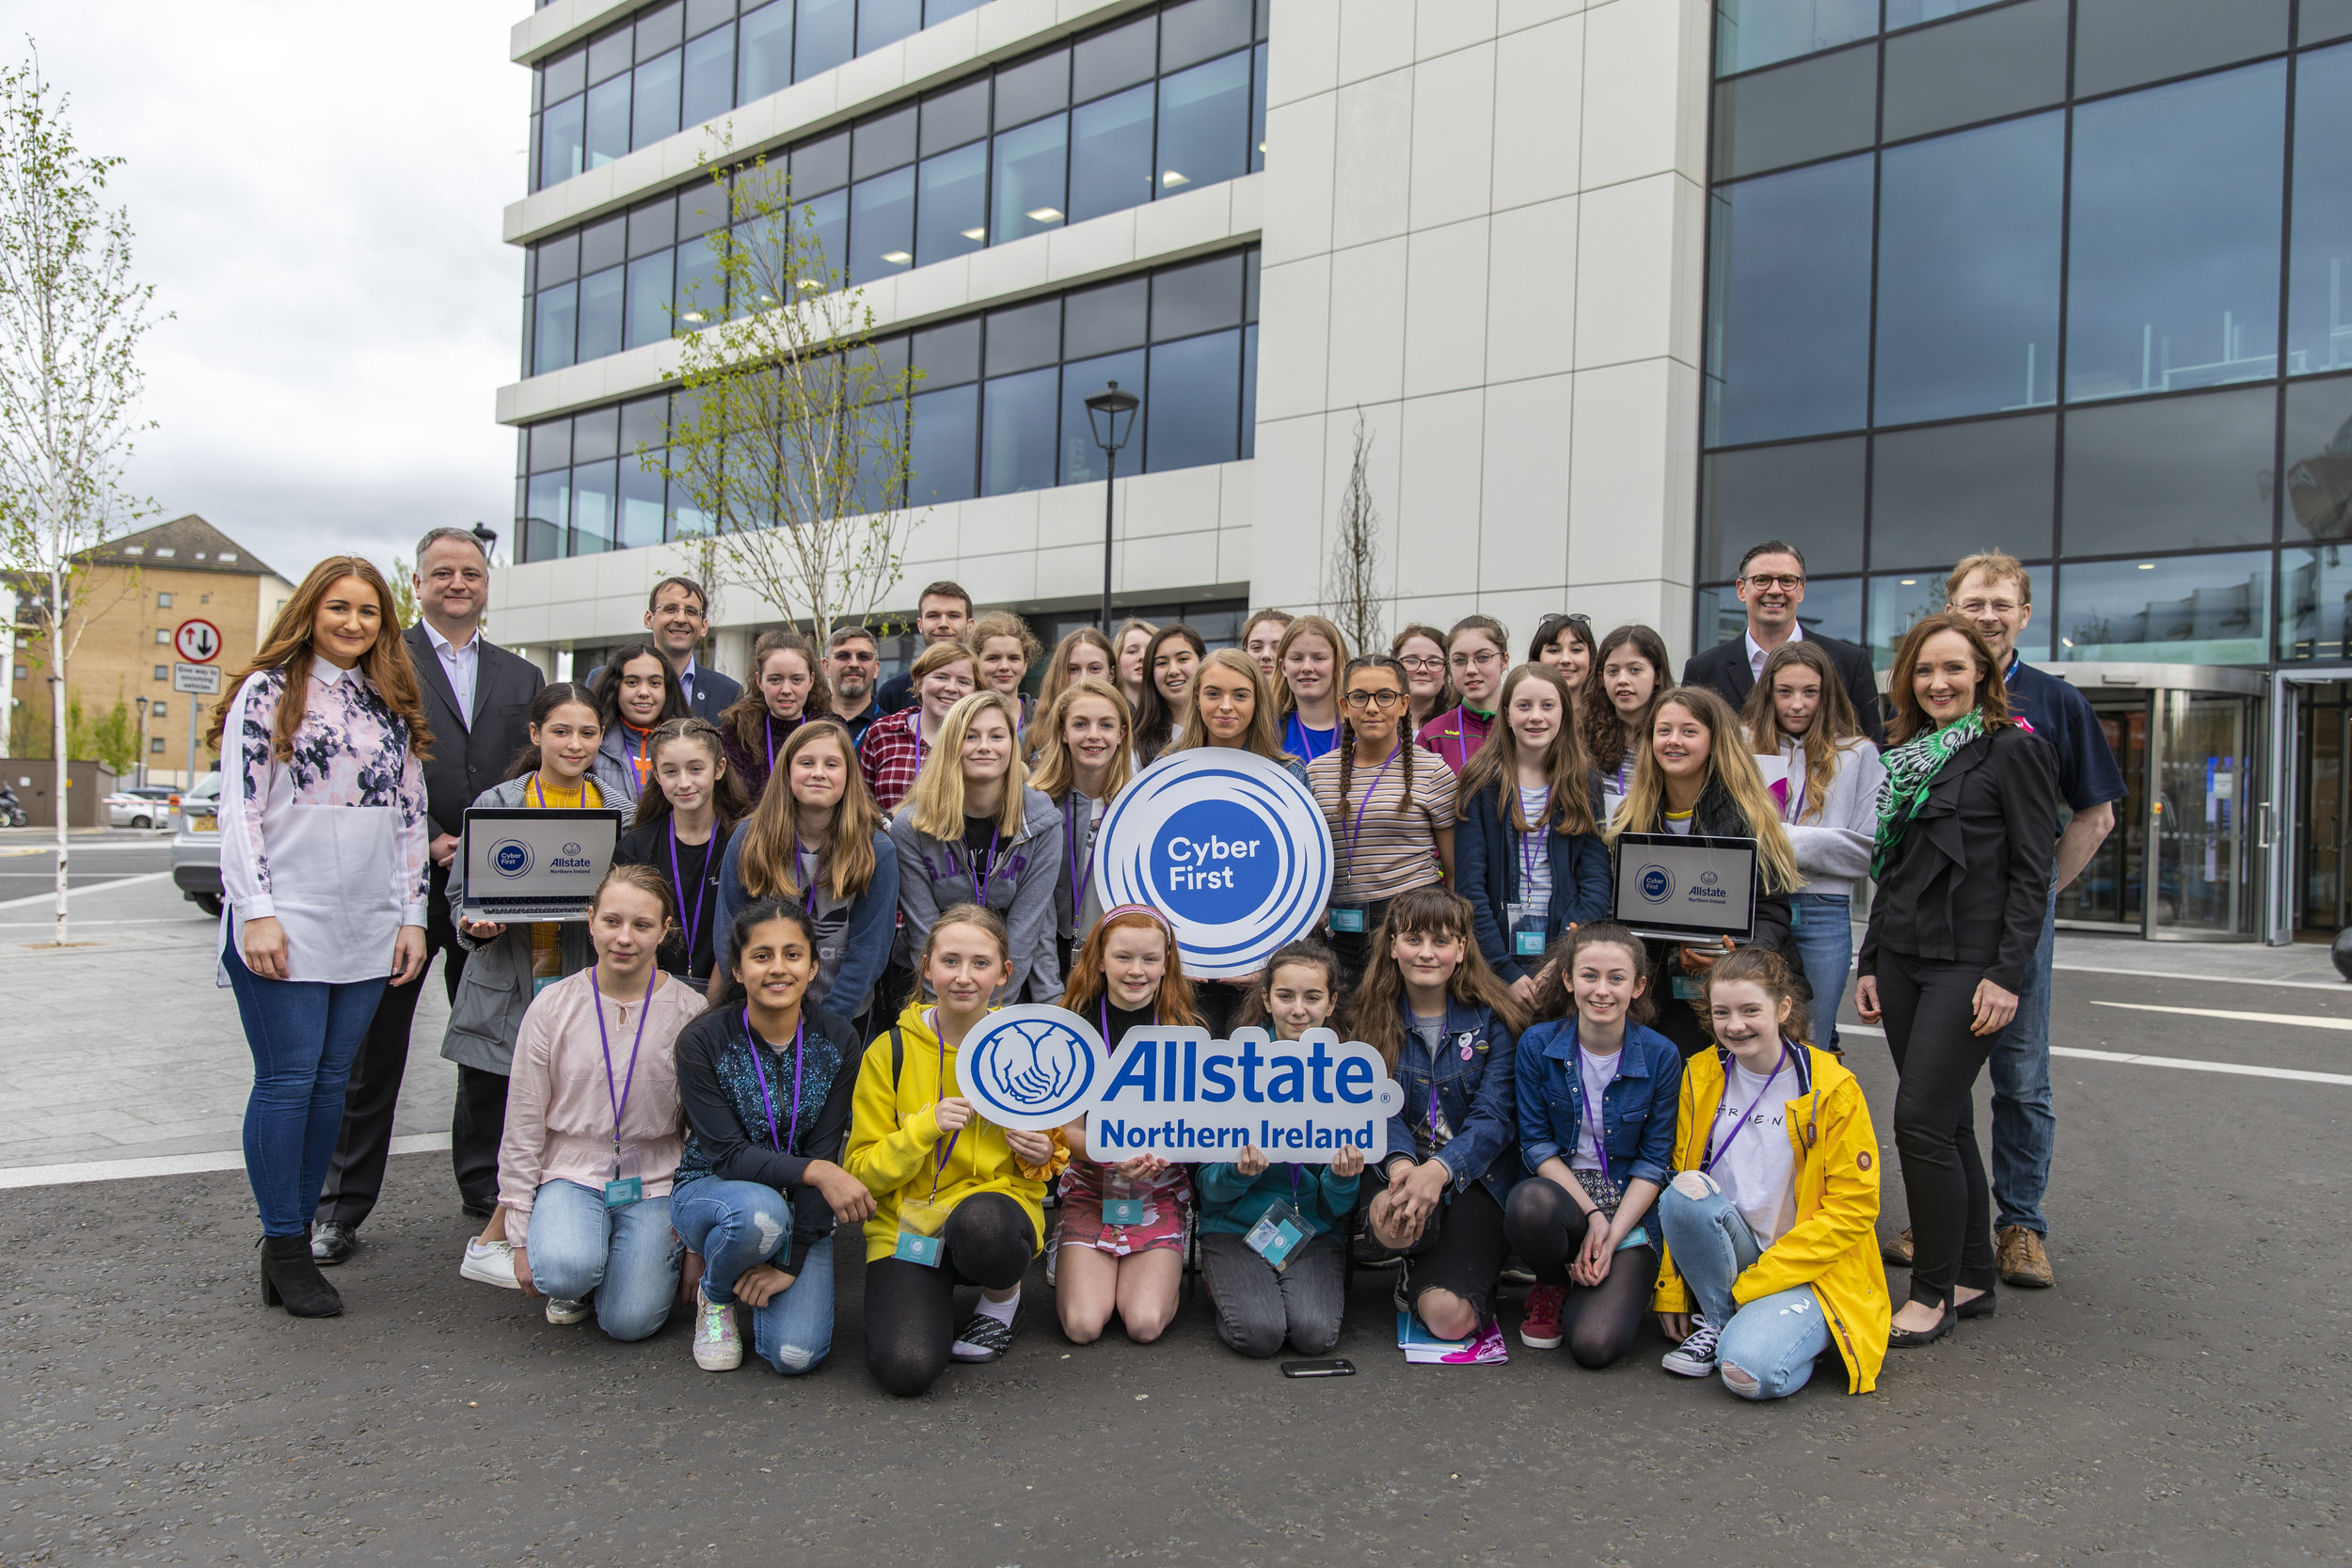 (Second from left):  John Healy, vice president and managing director, Allstate Northern Ireland with the participants of the CyberFirst Girls Defenders course hosted at Allstate's Belfast offices. The CyberFirst Girls Defenders course is a key part of the U.K. government's National Cyber Security Programme. Fifty girls aged 13-14 attended the programme.